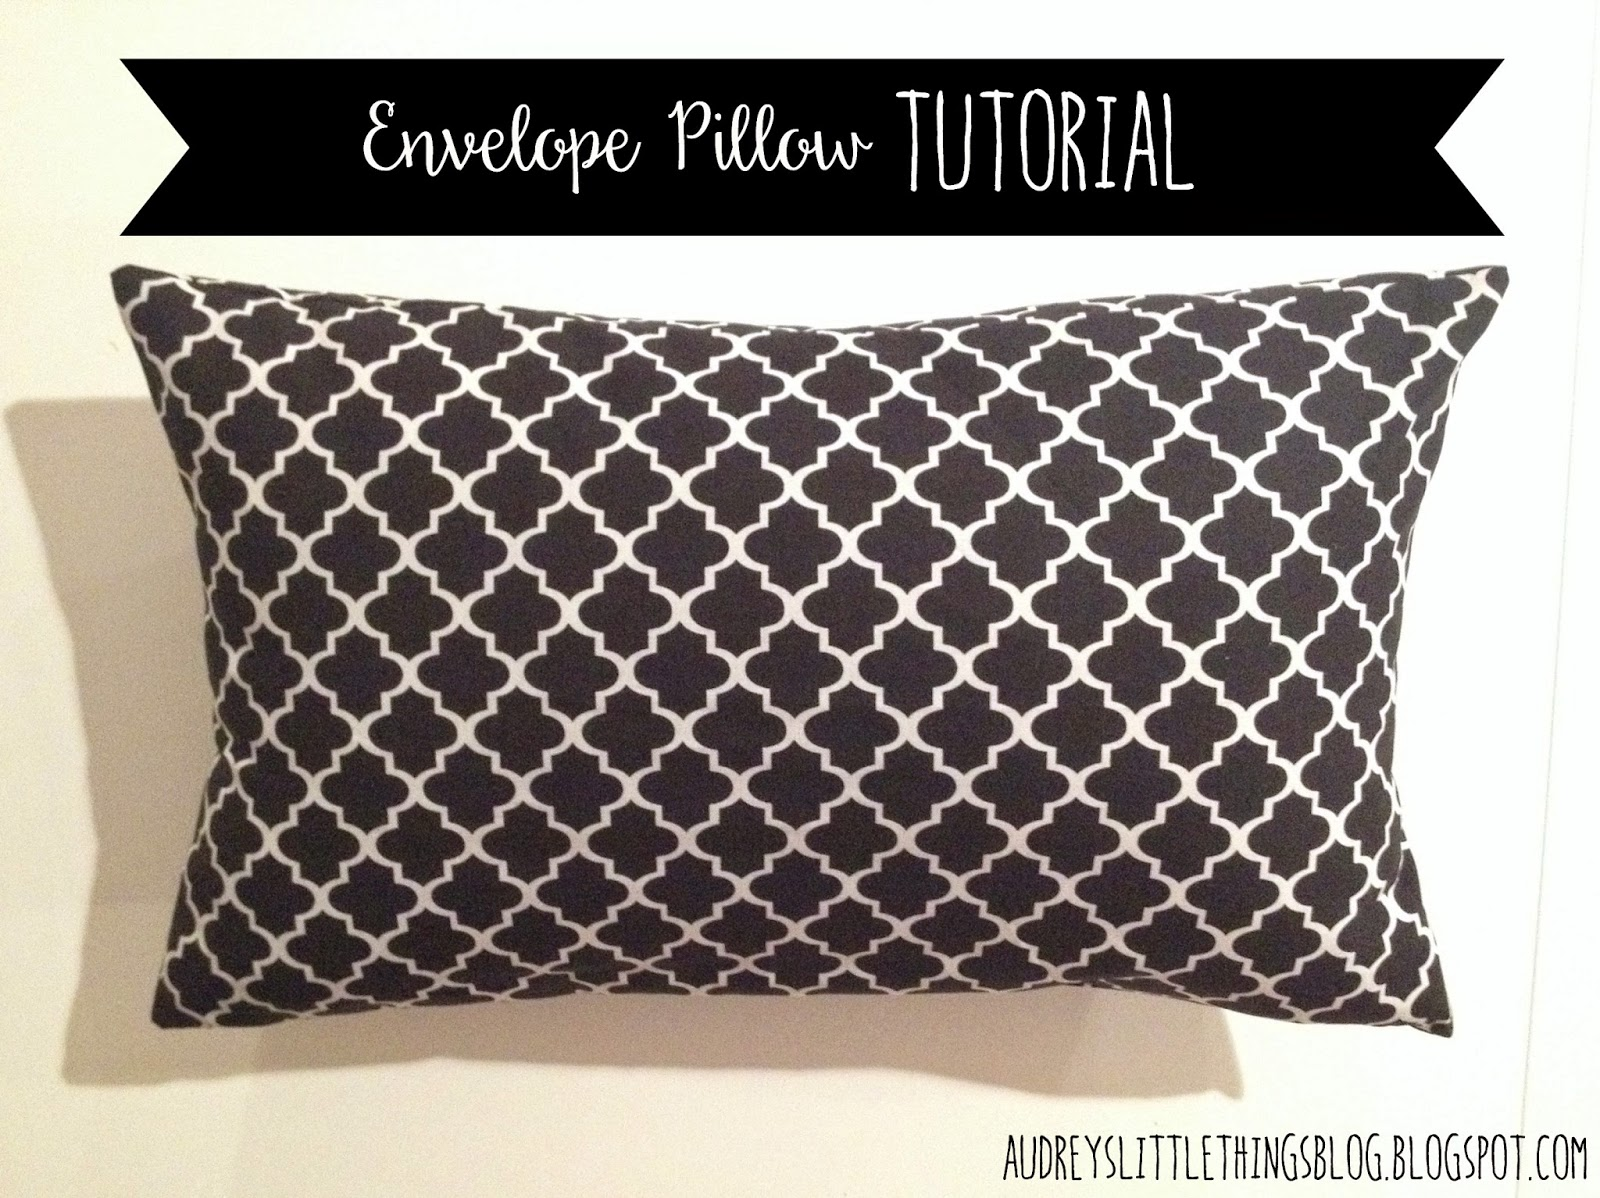 Envelope Pillow Tutorial Audrey White